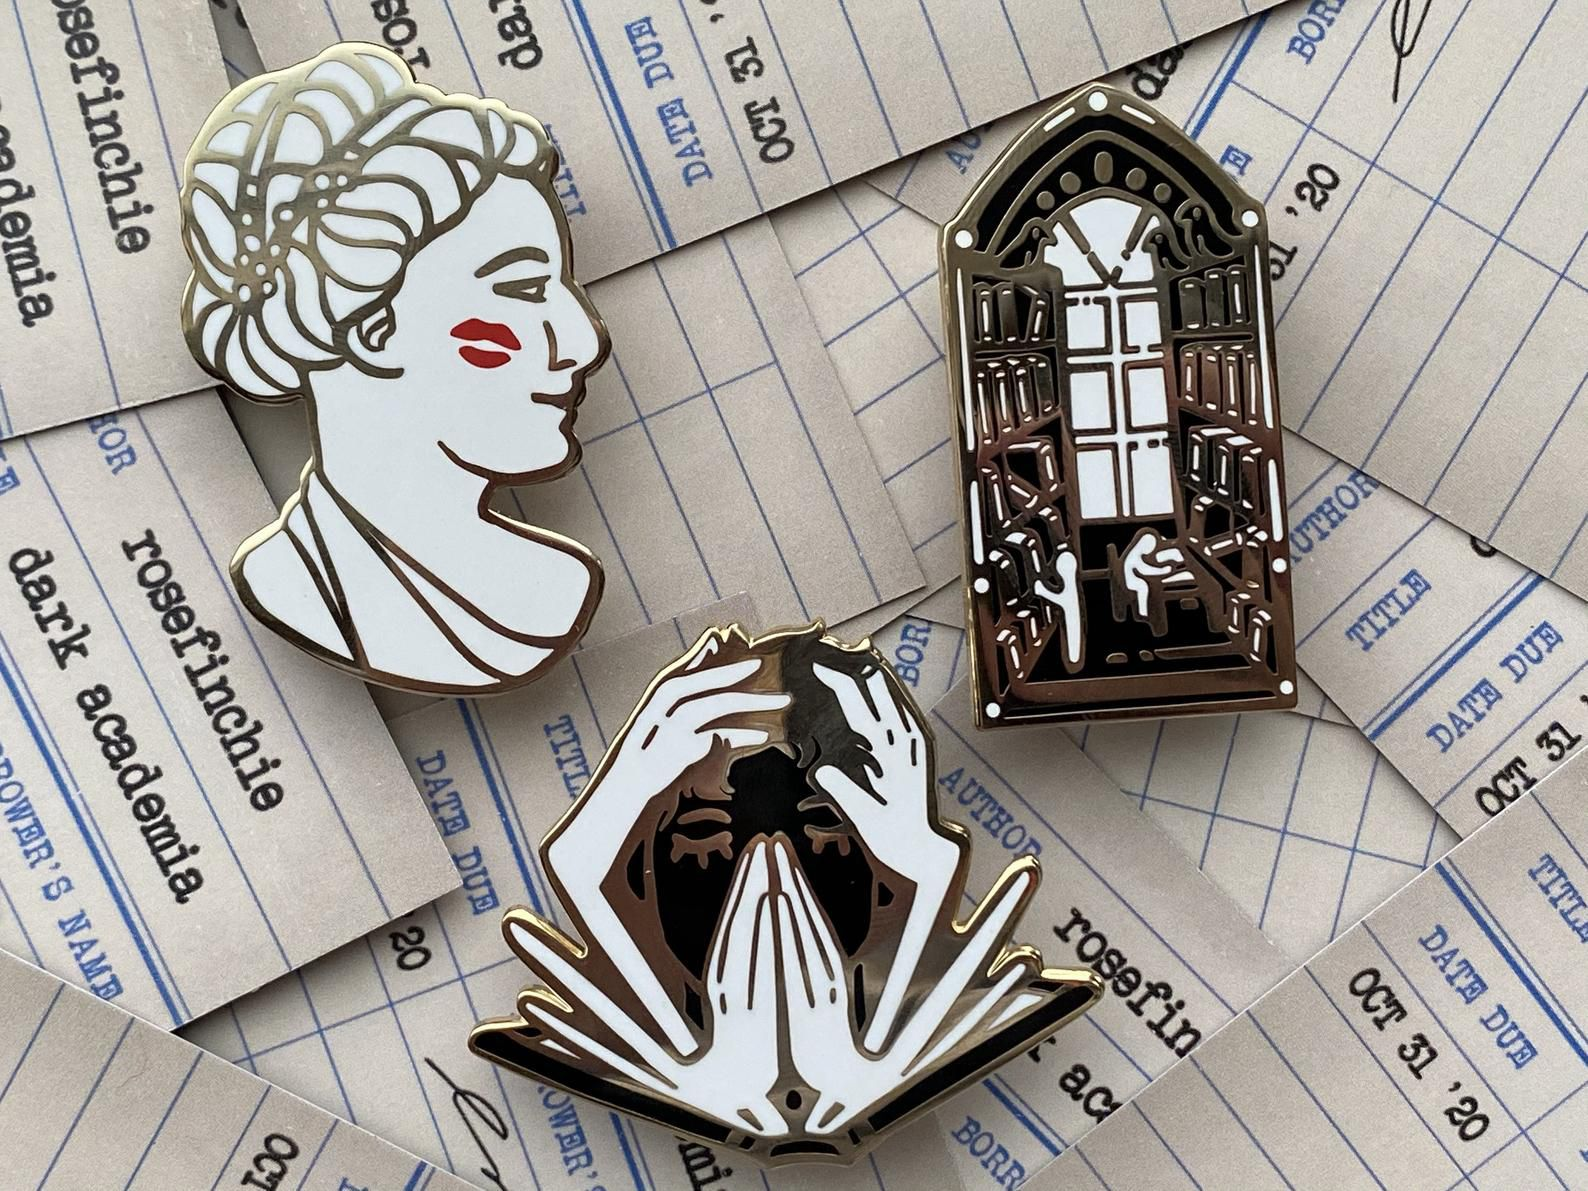 three dark academia enamel pins against a backdrop of library due date cards